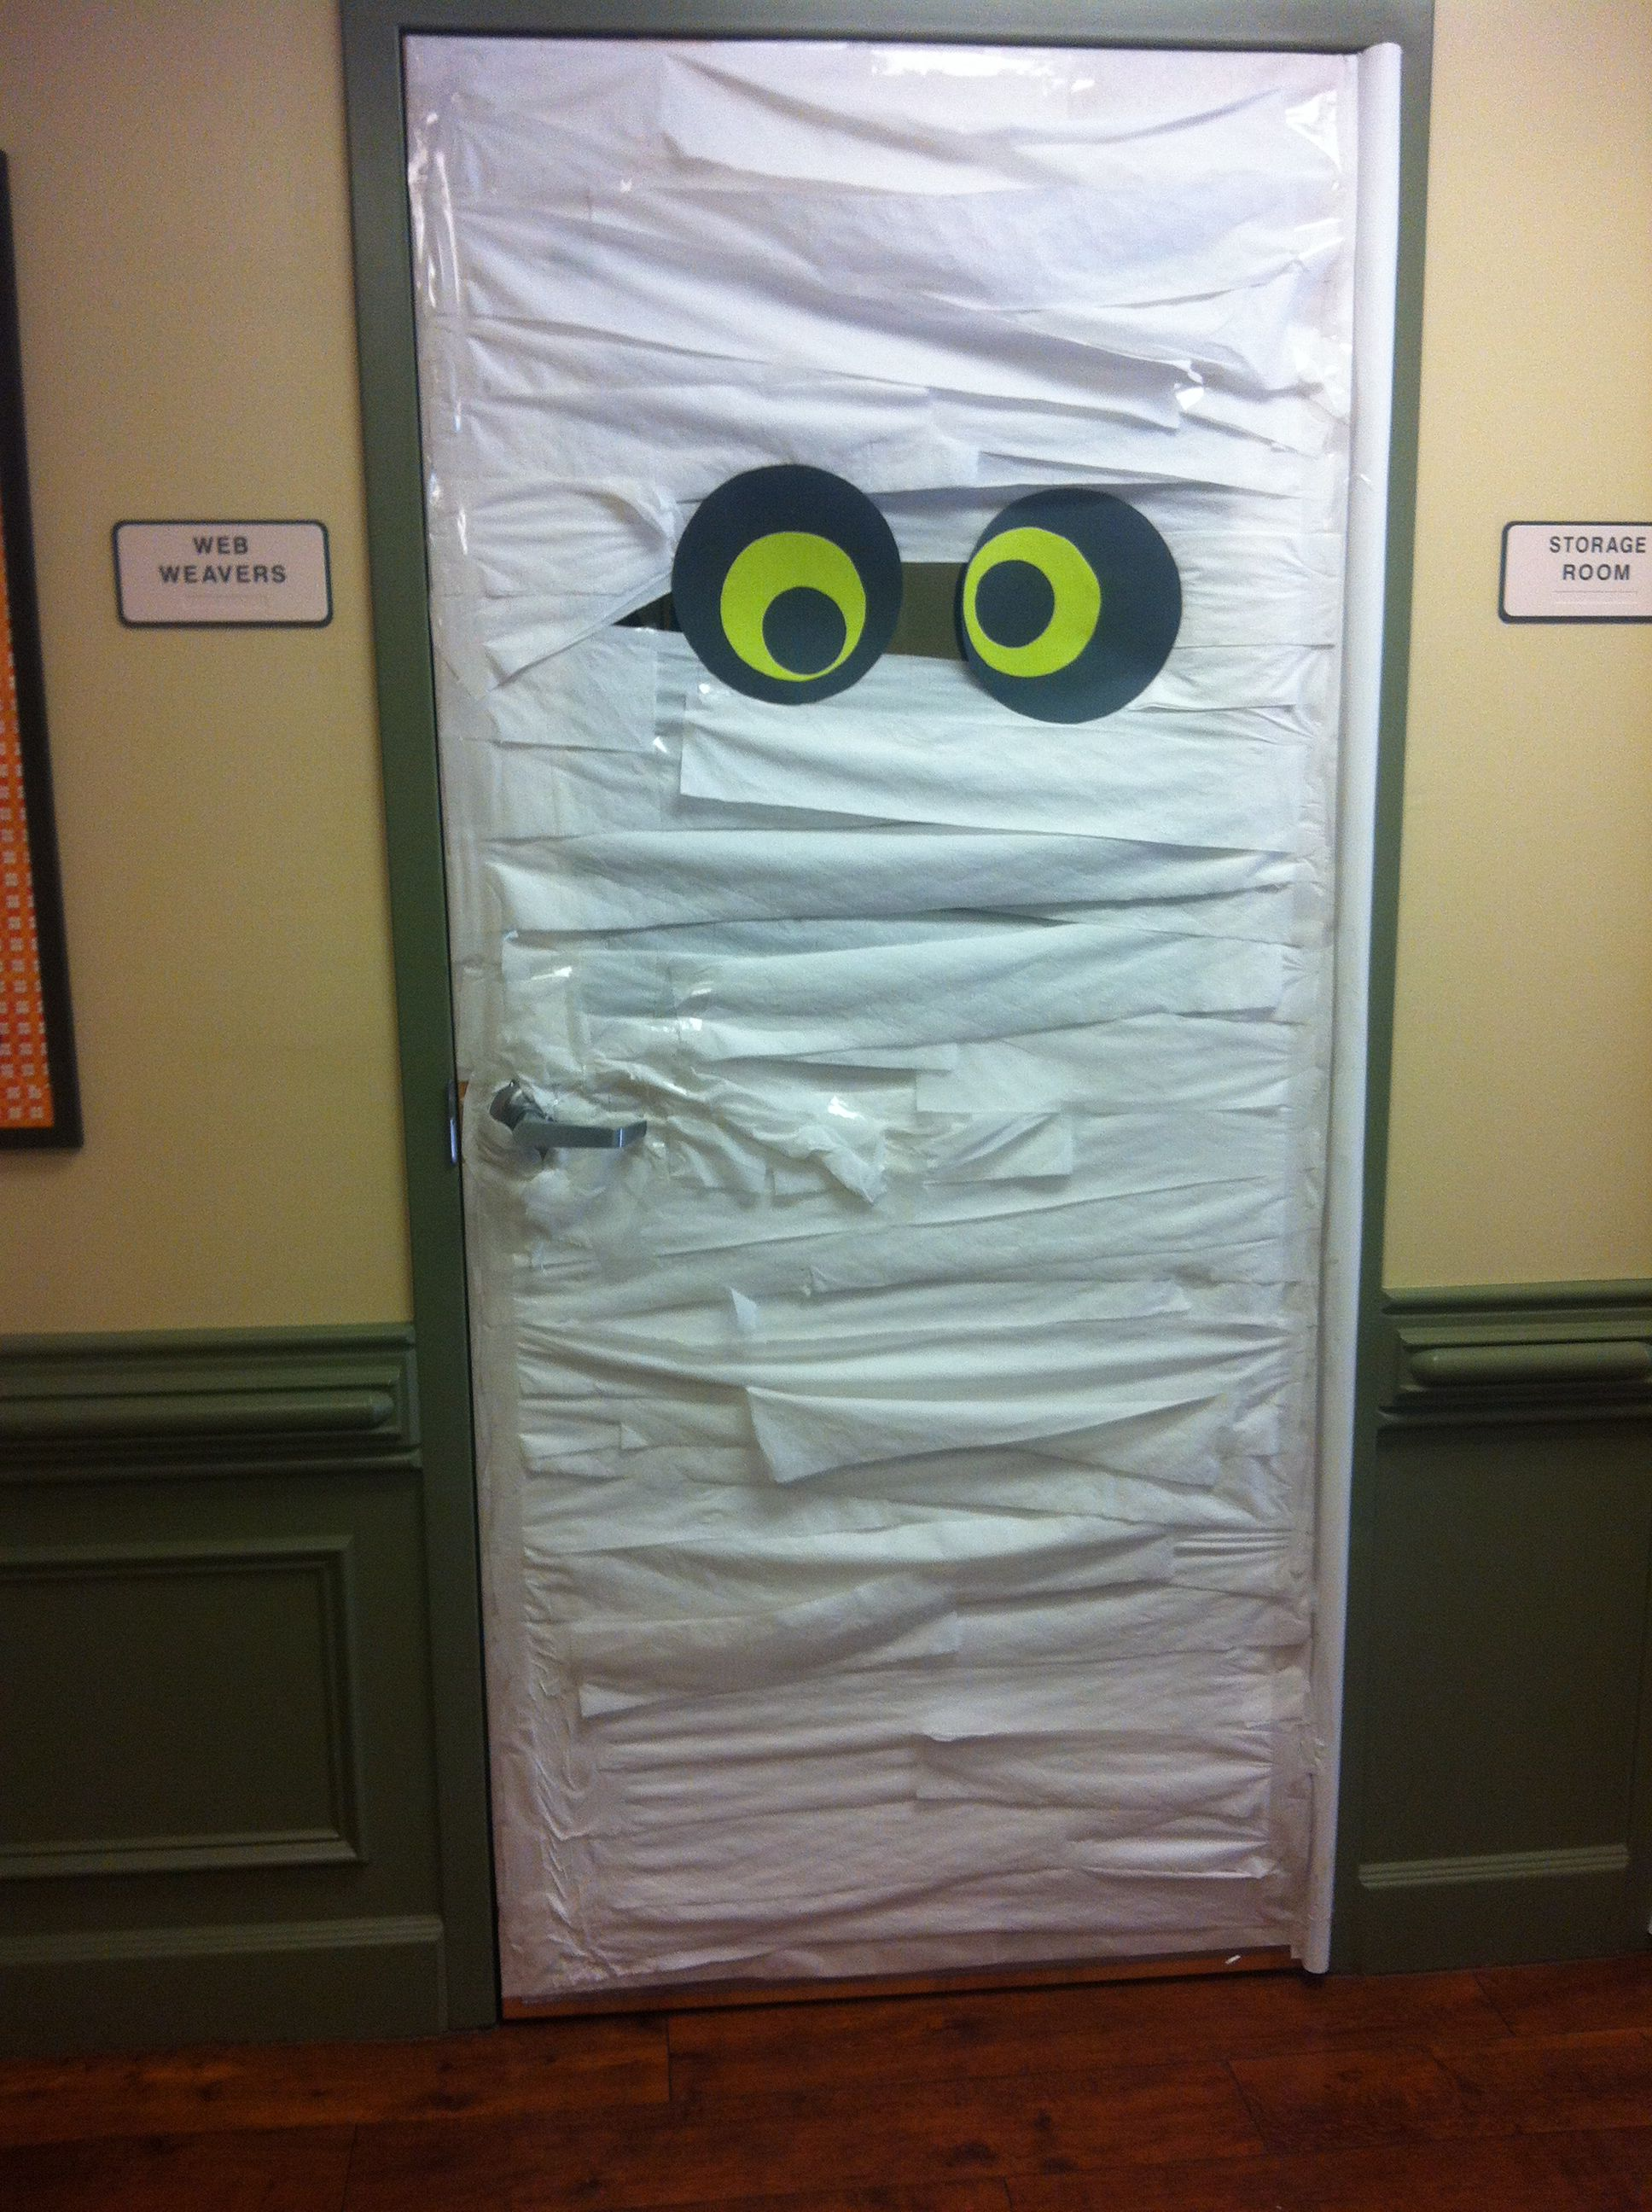 Classroom door decoration October 2013 Halloween My Creations - Halloween Classroom Door Decorations